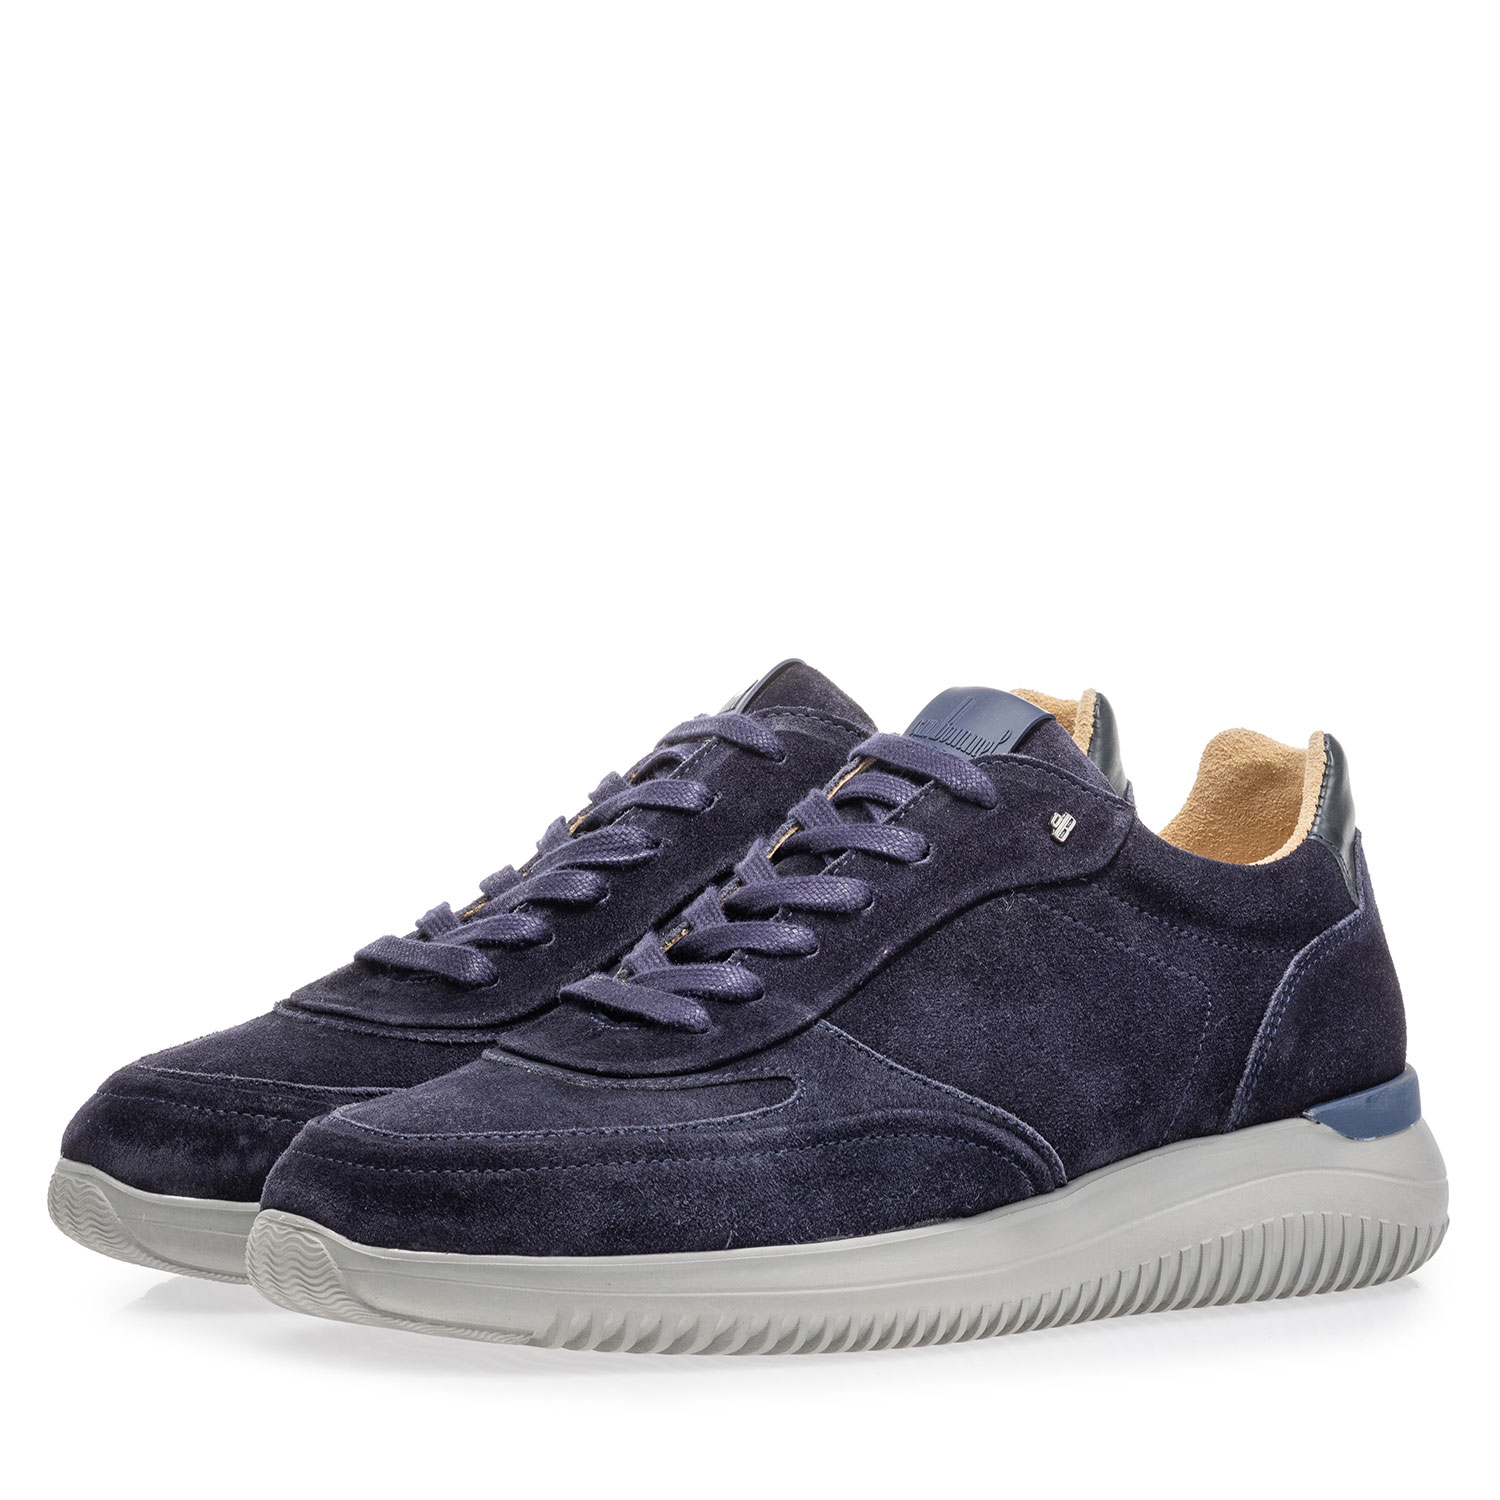 16306/11 - Blue suede leather sneaker